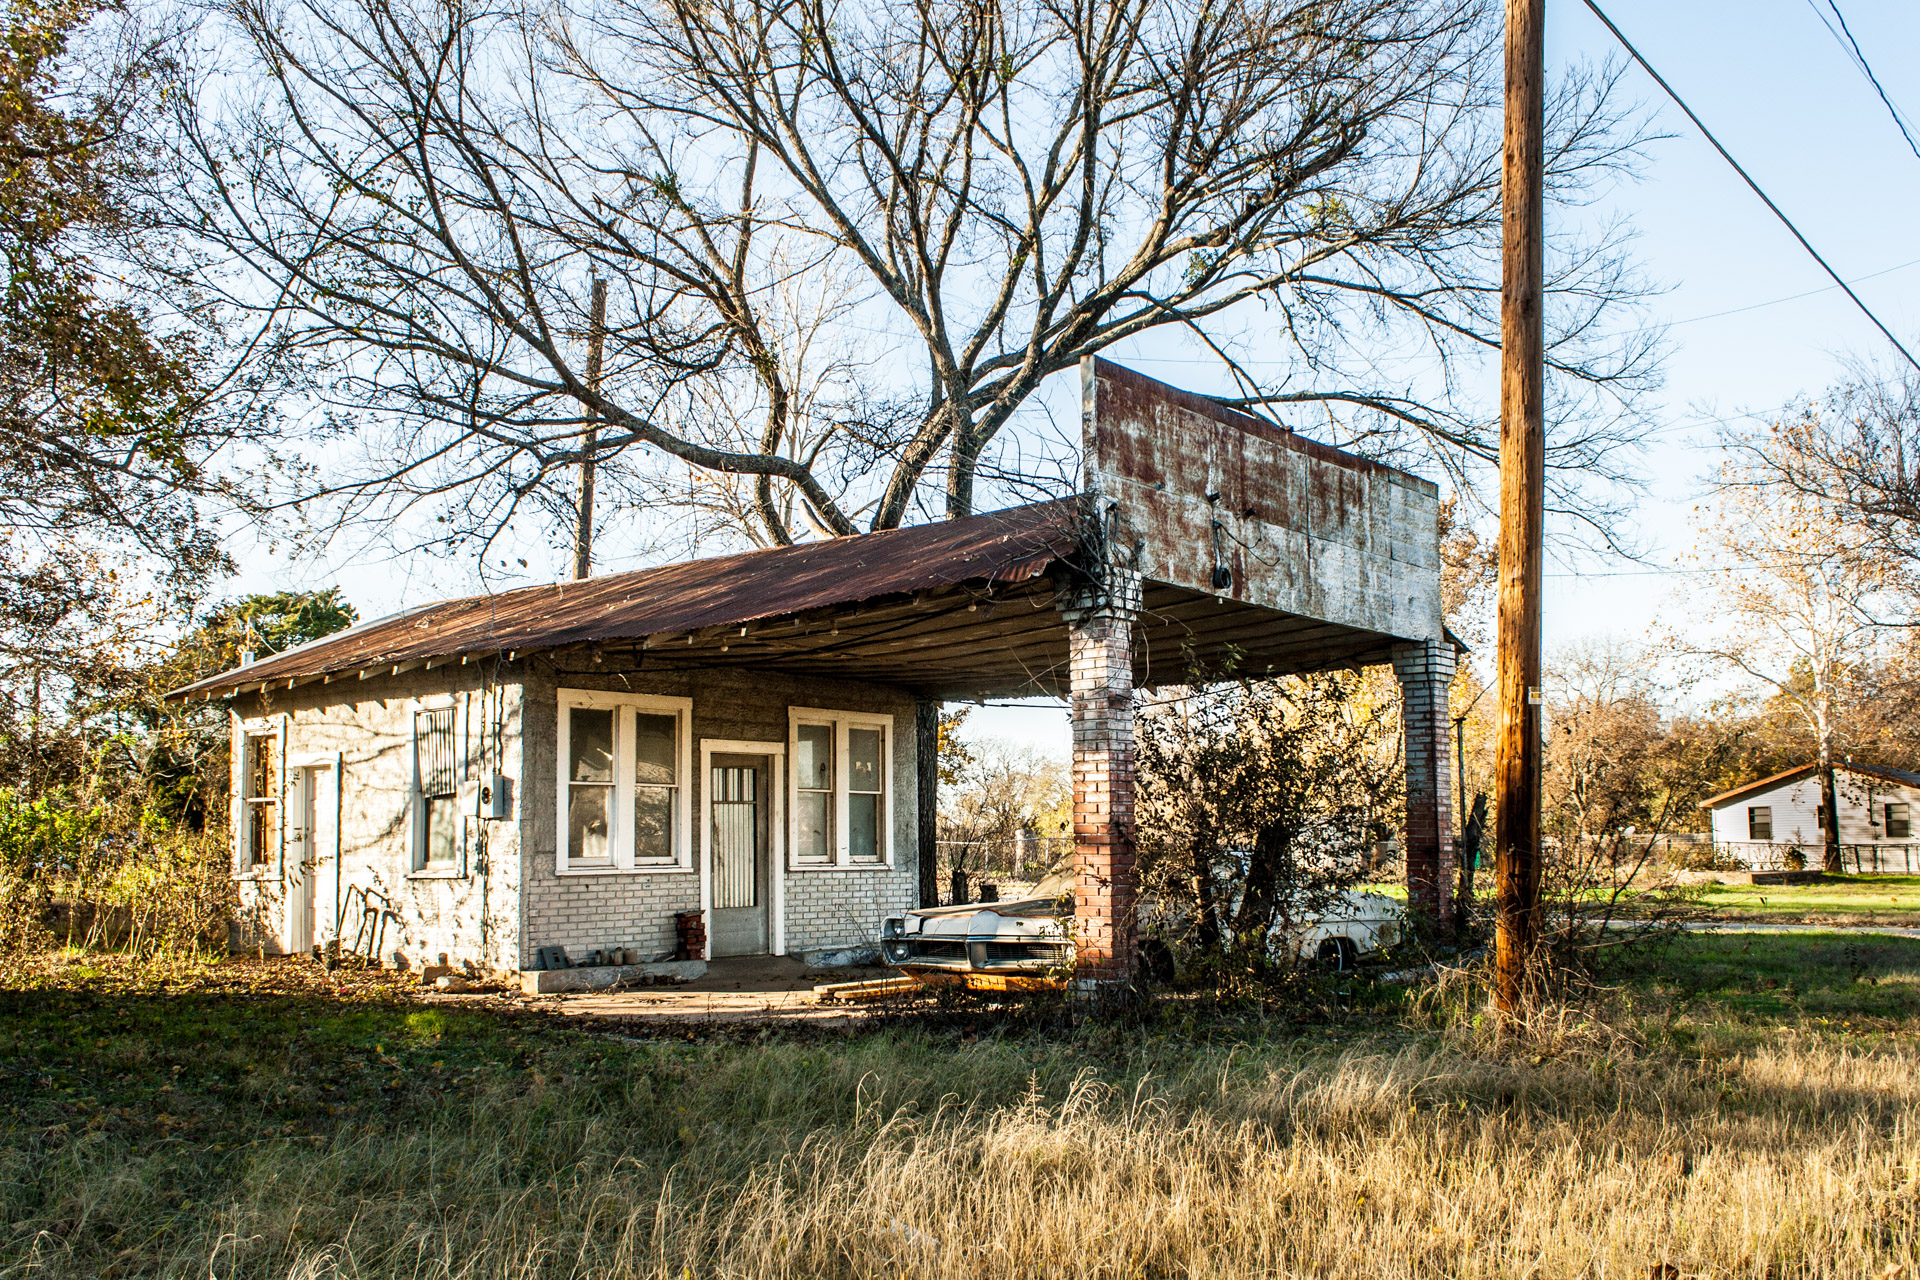 Tehuacana, Texas - Pontiac Gas Station (front far)